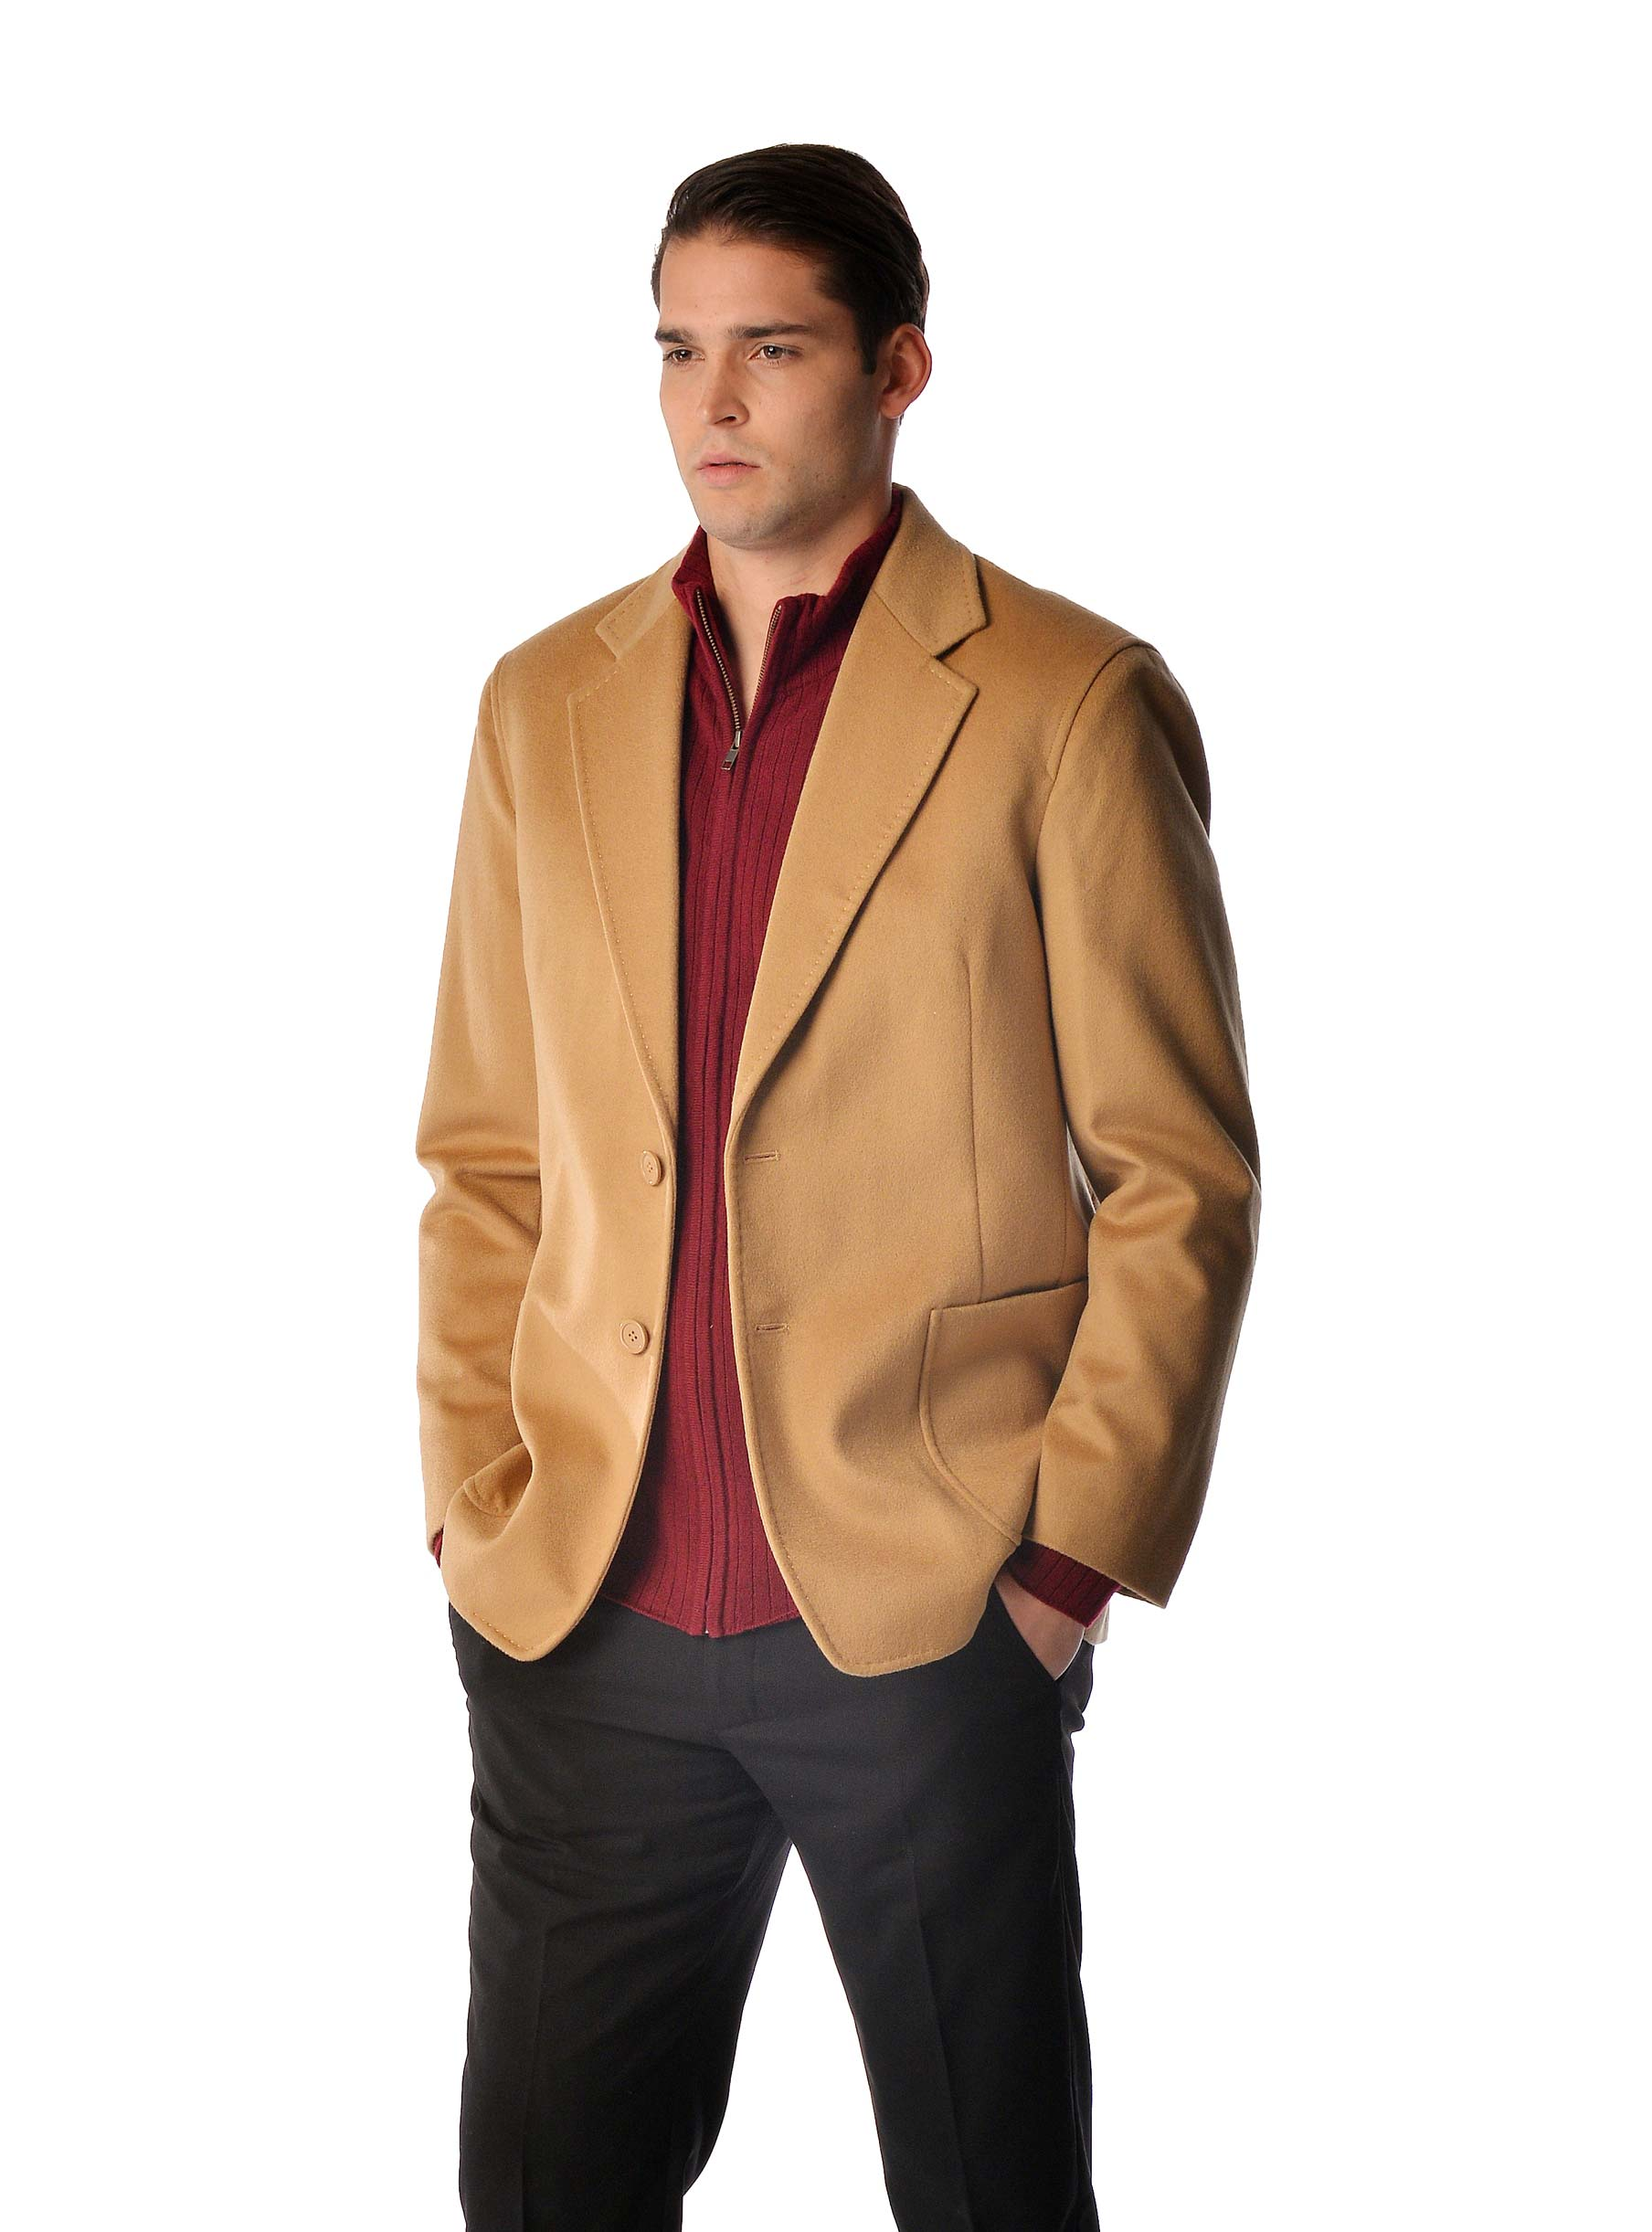 Luxurious  soft and really warm  this cashmere coat is made from the finest grades of cashmere and fine wool and offers unsurpassed warmth and softness. This is a sport coat/blazer and has the following features- Made from 30 Cashmere and 70 Fine Wool2 Button with overlap pockets100 Polyester Satin Lining Available in BlackAvailable in standard US sizes 38 to 50Measurements of this Coat Size38404244464850Length29.53030.53131.53232.5Shoulder19.52020.52121.52222.5Sleeve24.2524.7525.2525.7526.2526.7527.25Corresponding Suit Size38404244464850